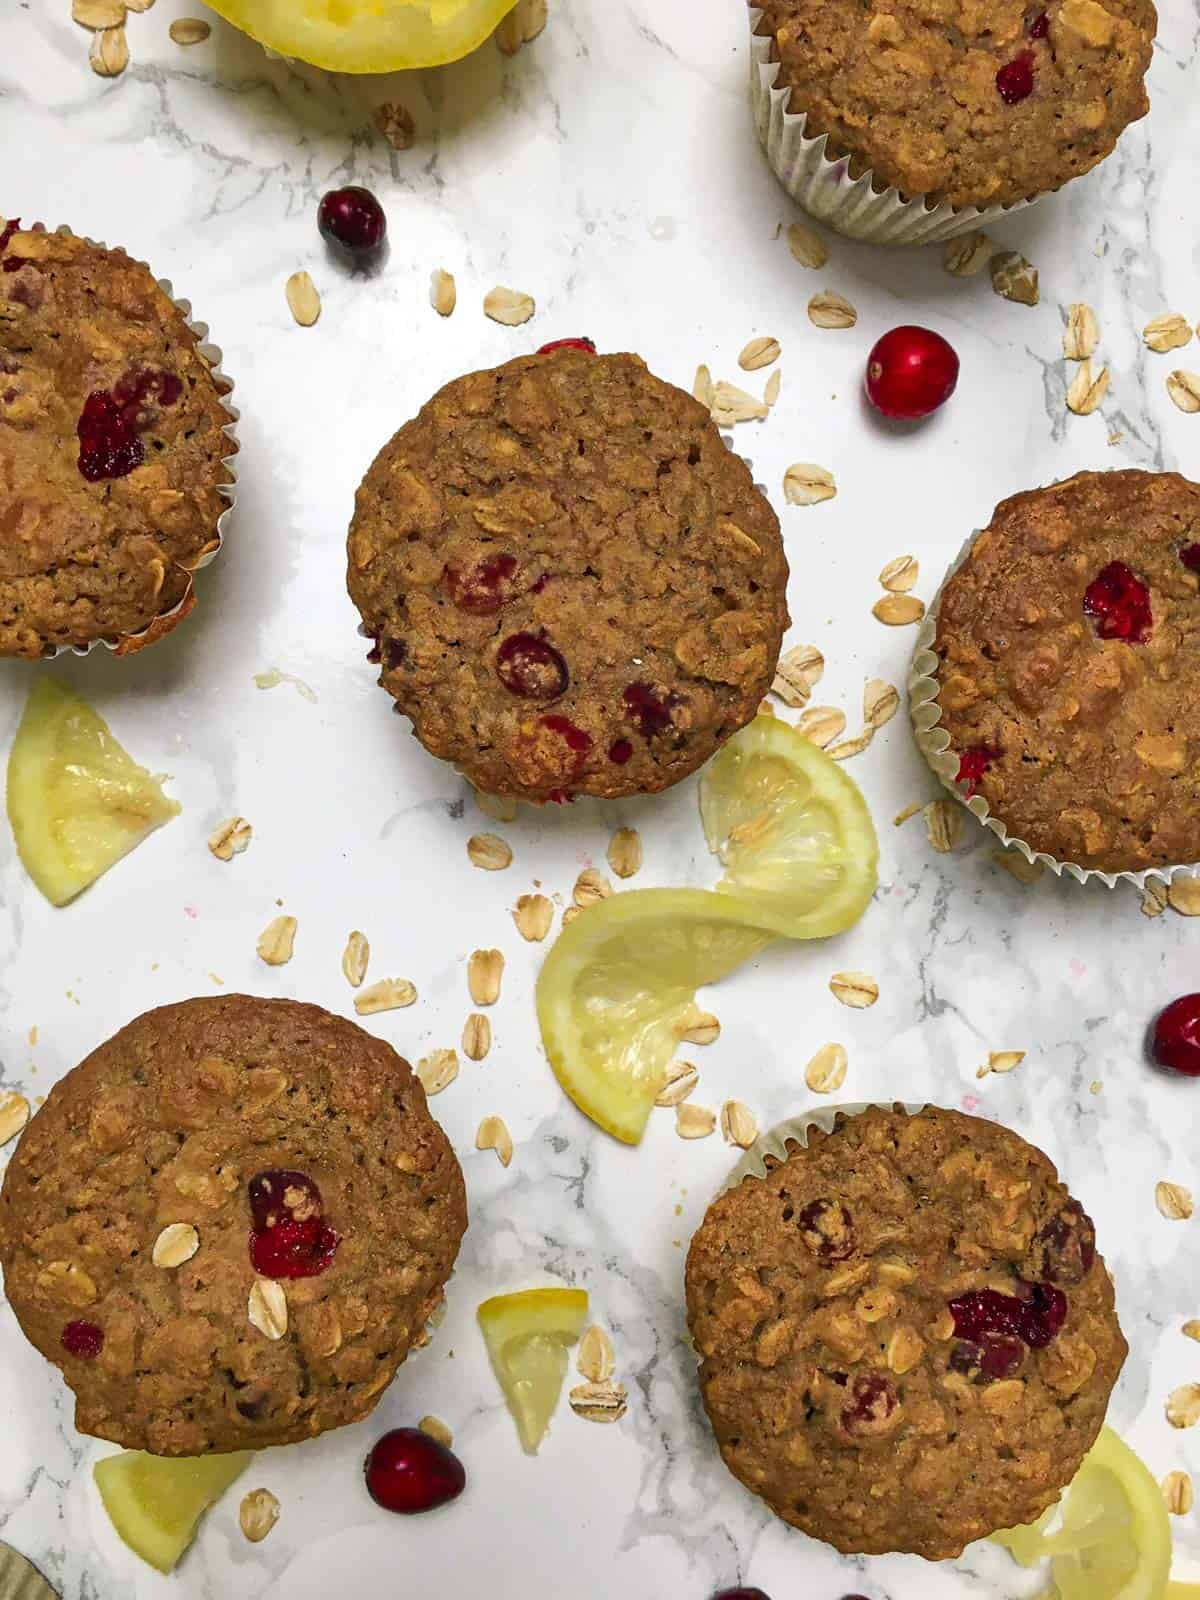 Overhead view of vegan cranberry muffins on marble counter.